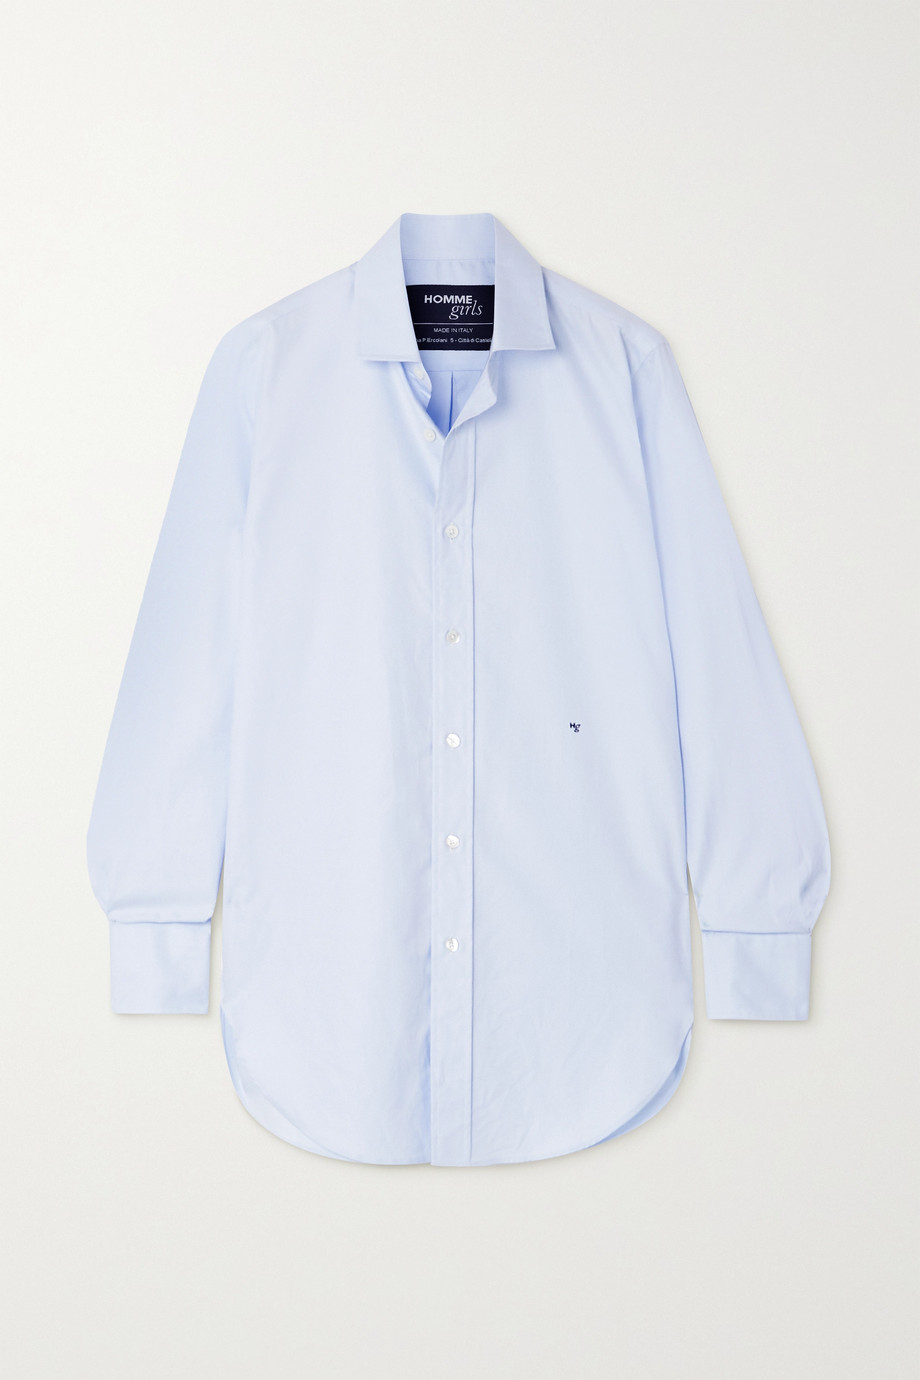 HOMMEGIRLS Embroidered cotton-poplin shirt